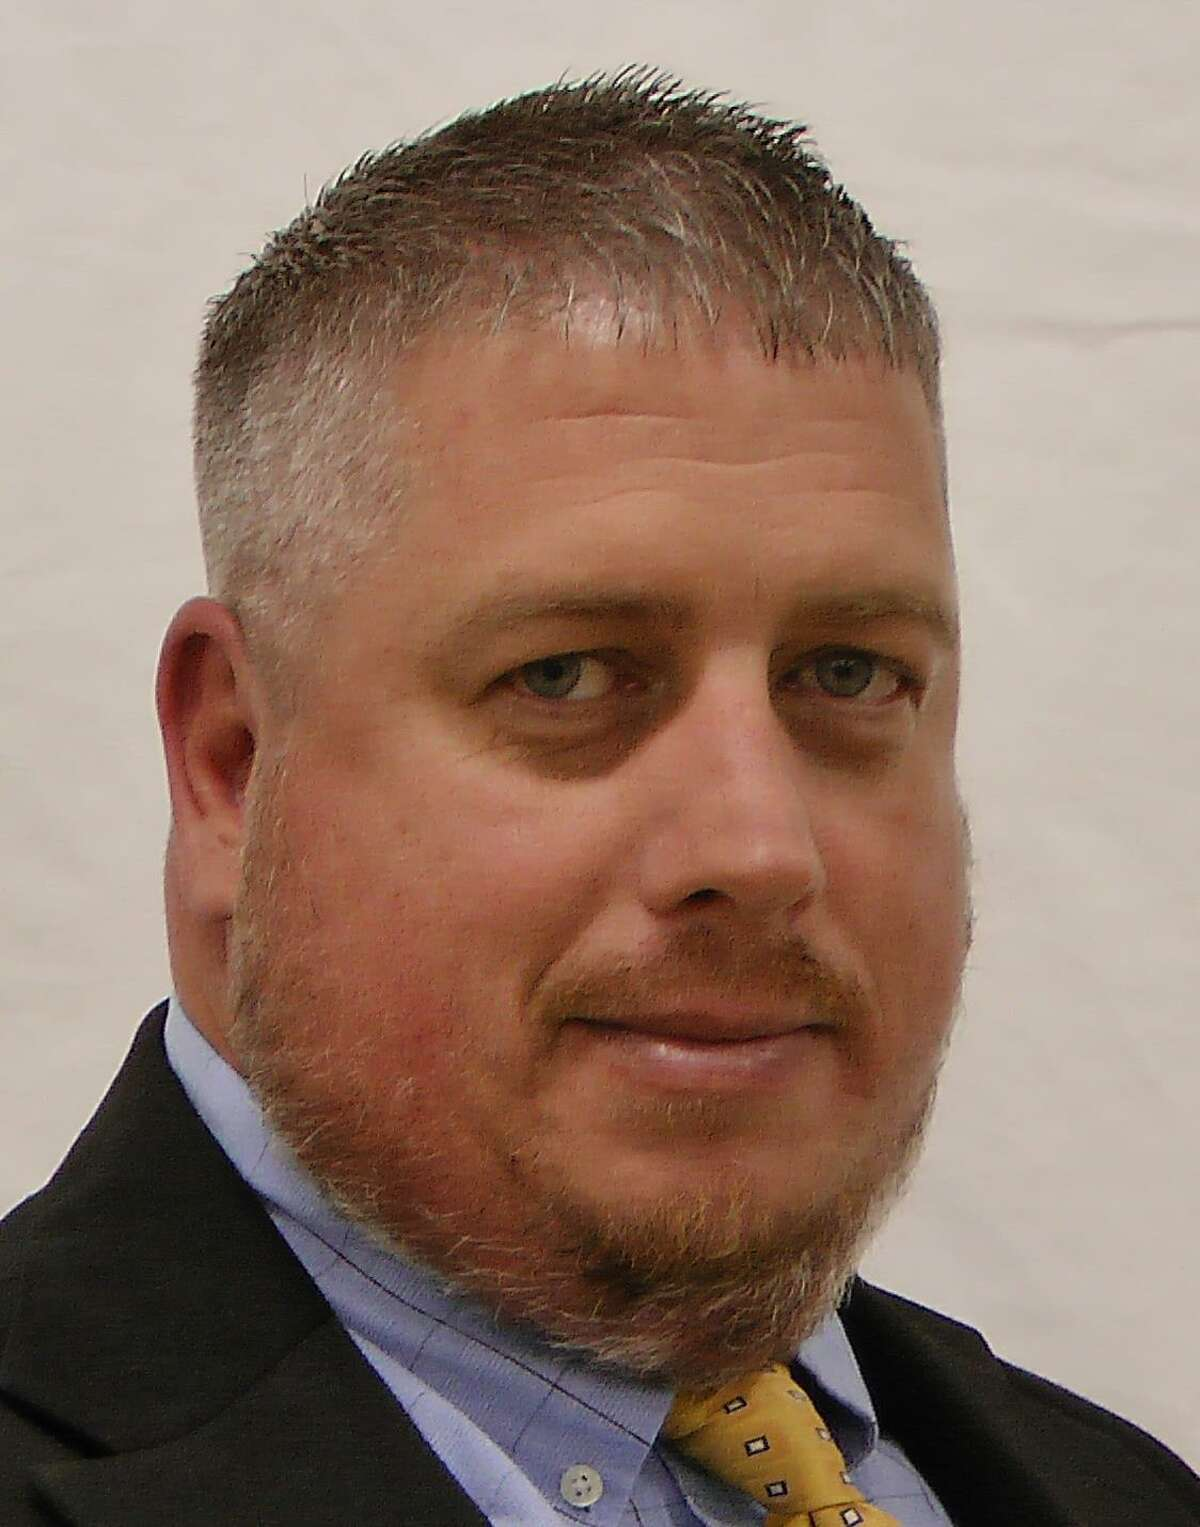 Rob Hyder, a third ward alderman and chairman of Derby's Charter Revision Commission, believes there is time to get some suggested changes on the November ballot before its Sept. 3 deadline.